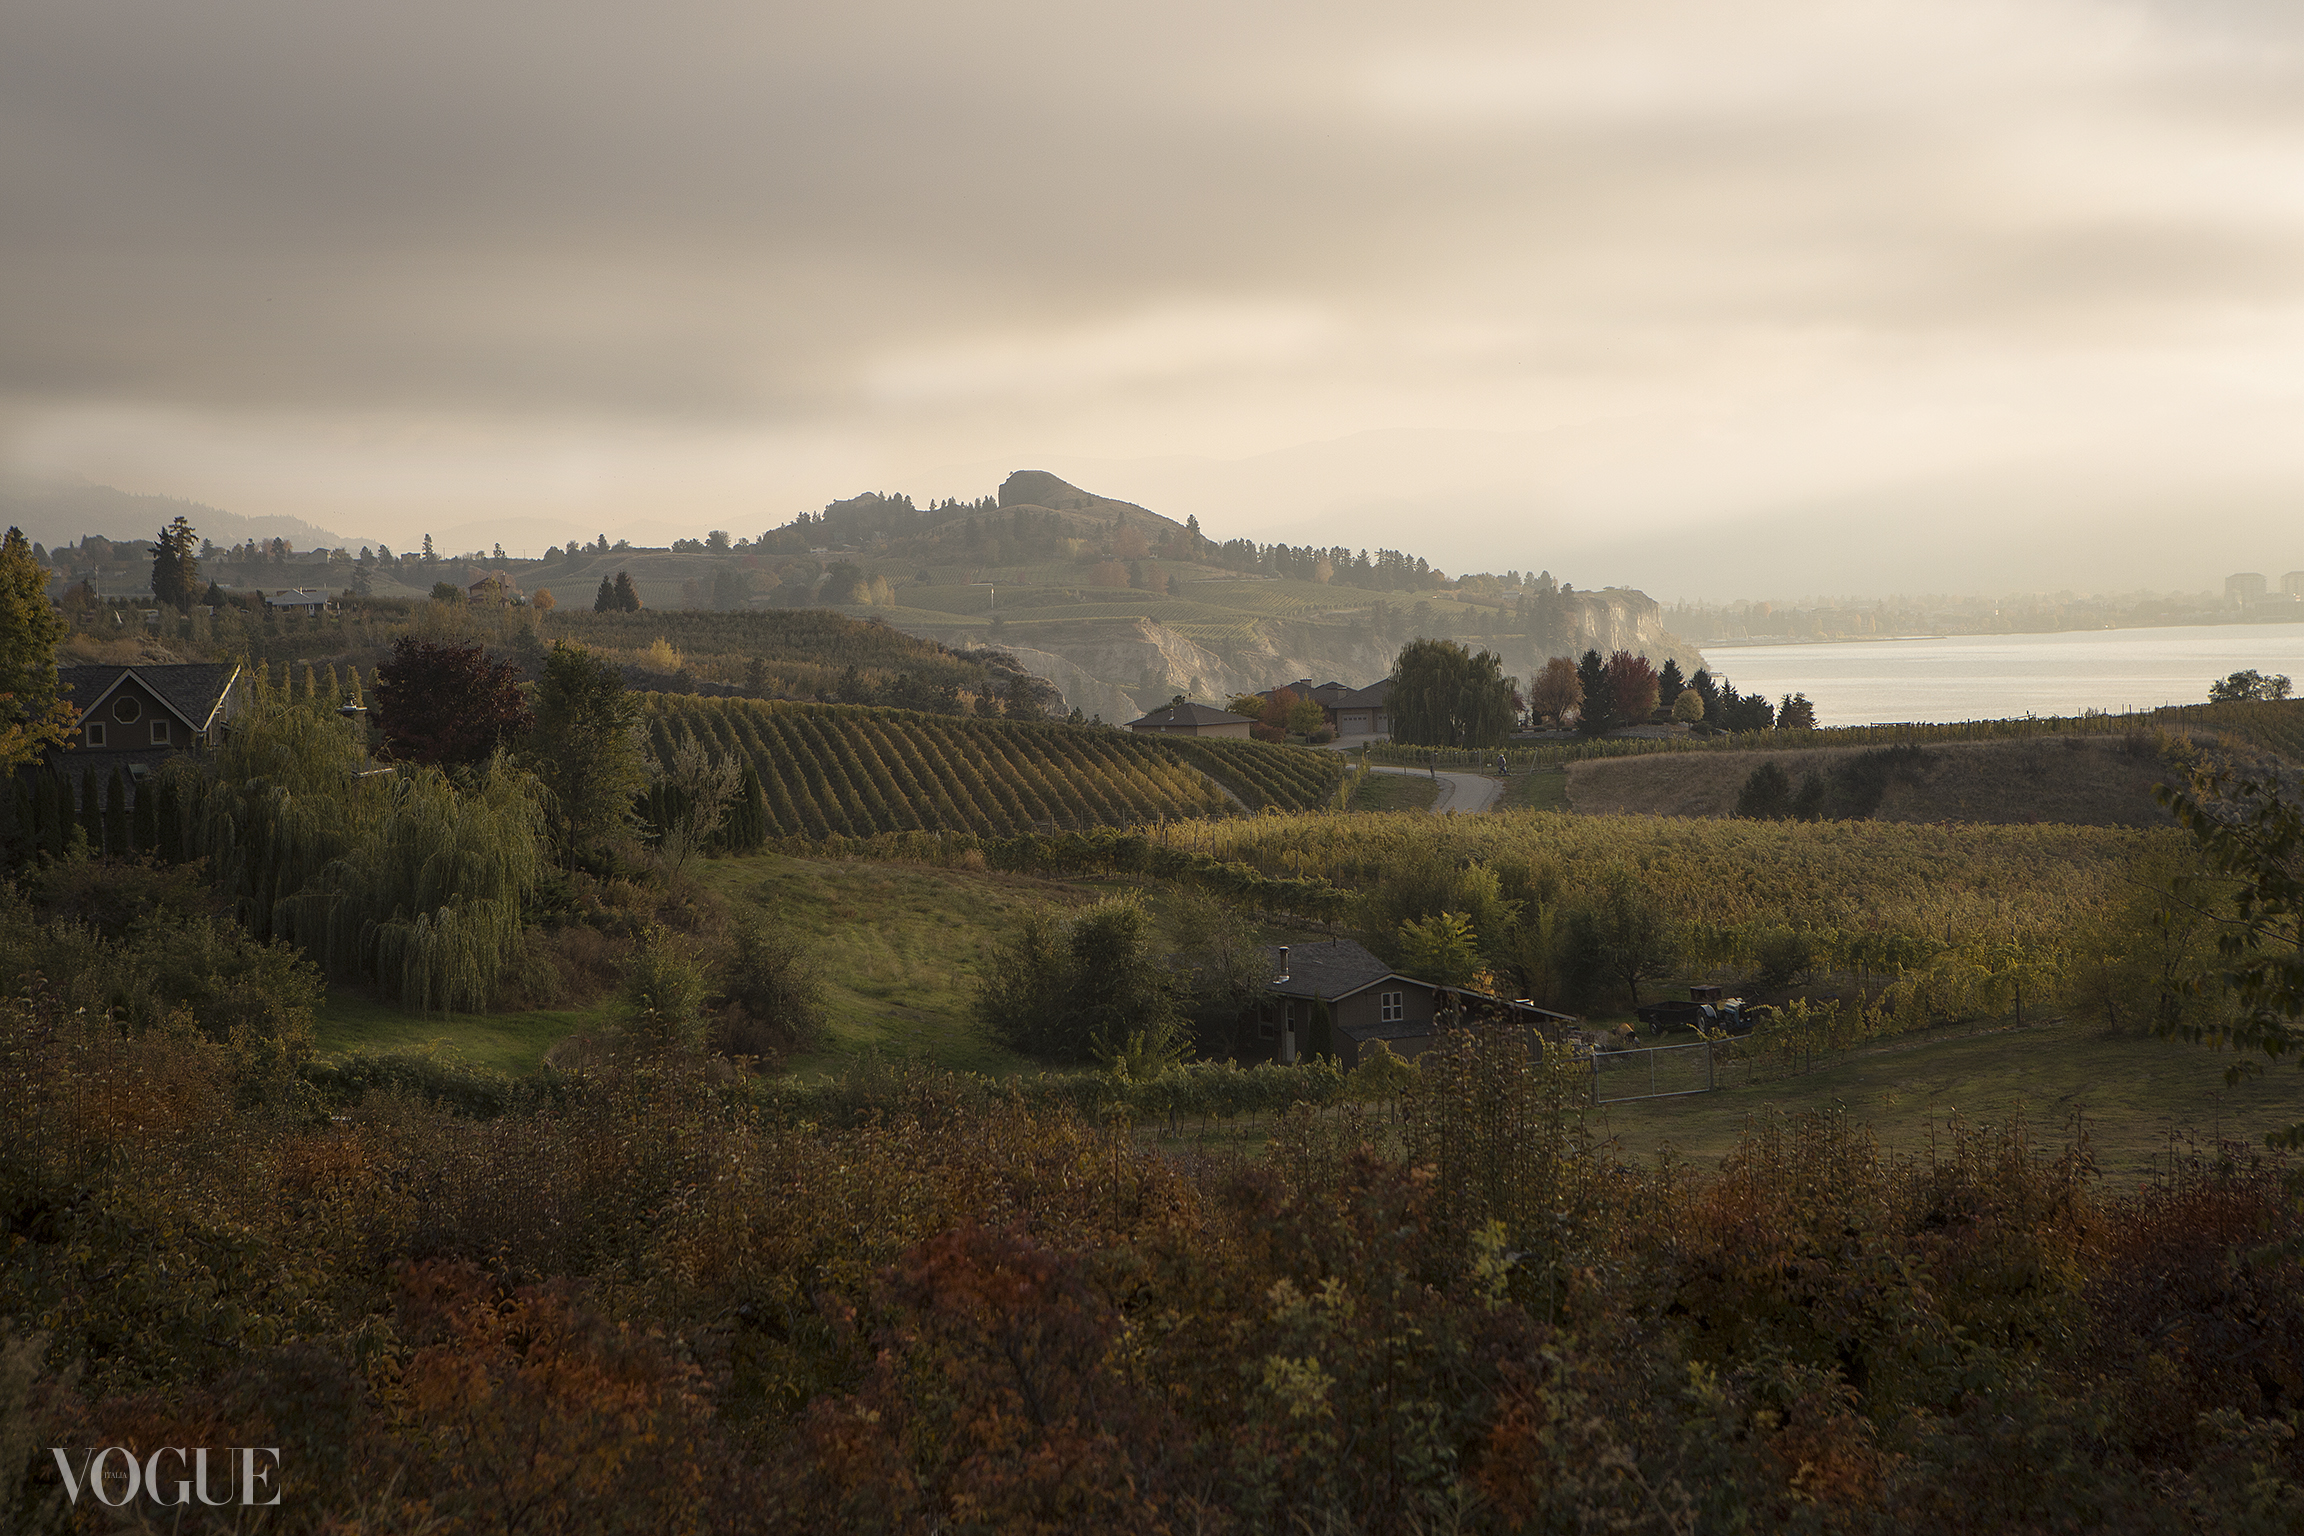 Landscape photo – looking out over Howling Bluff Winery, Naramata, BC